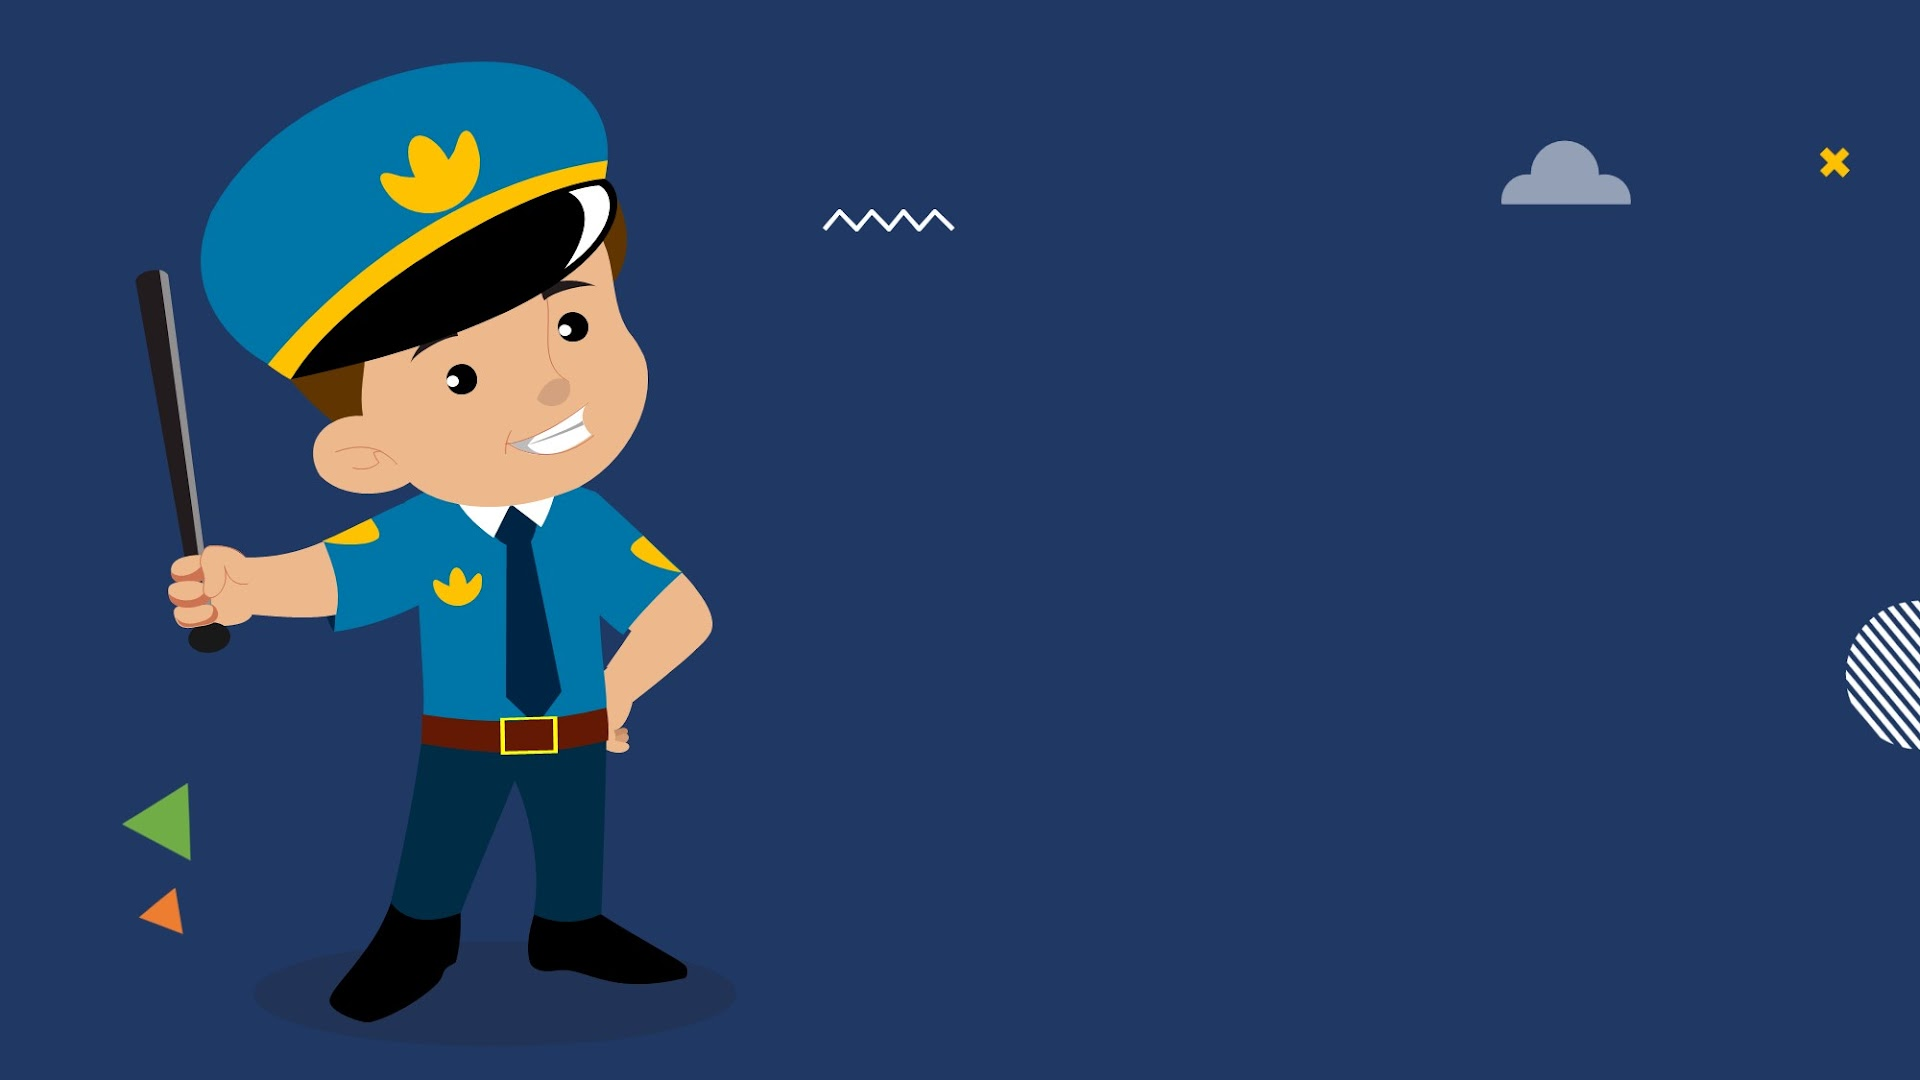 Cute Kid as Policeman - Free HD Background